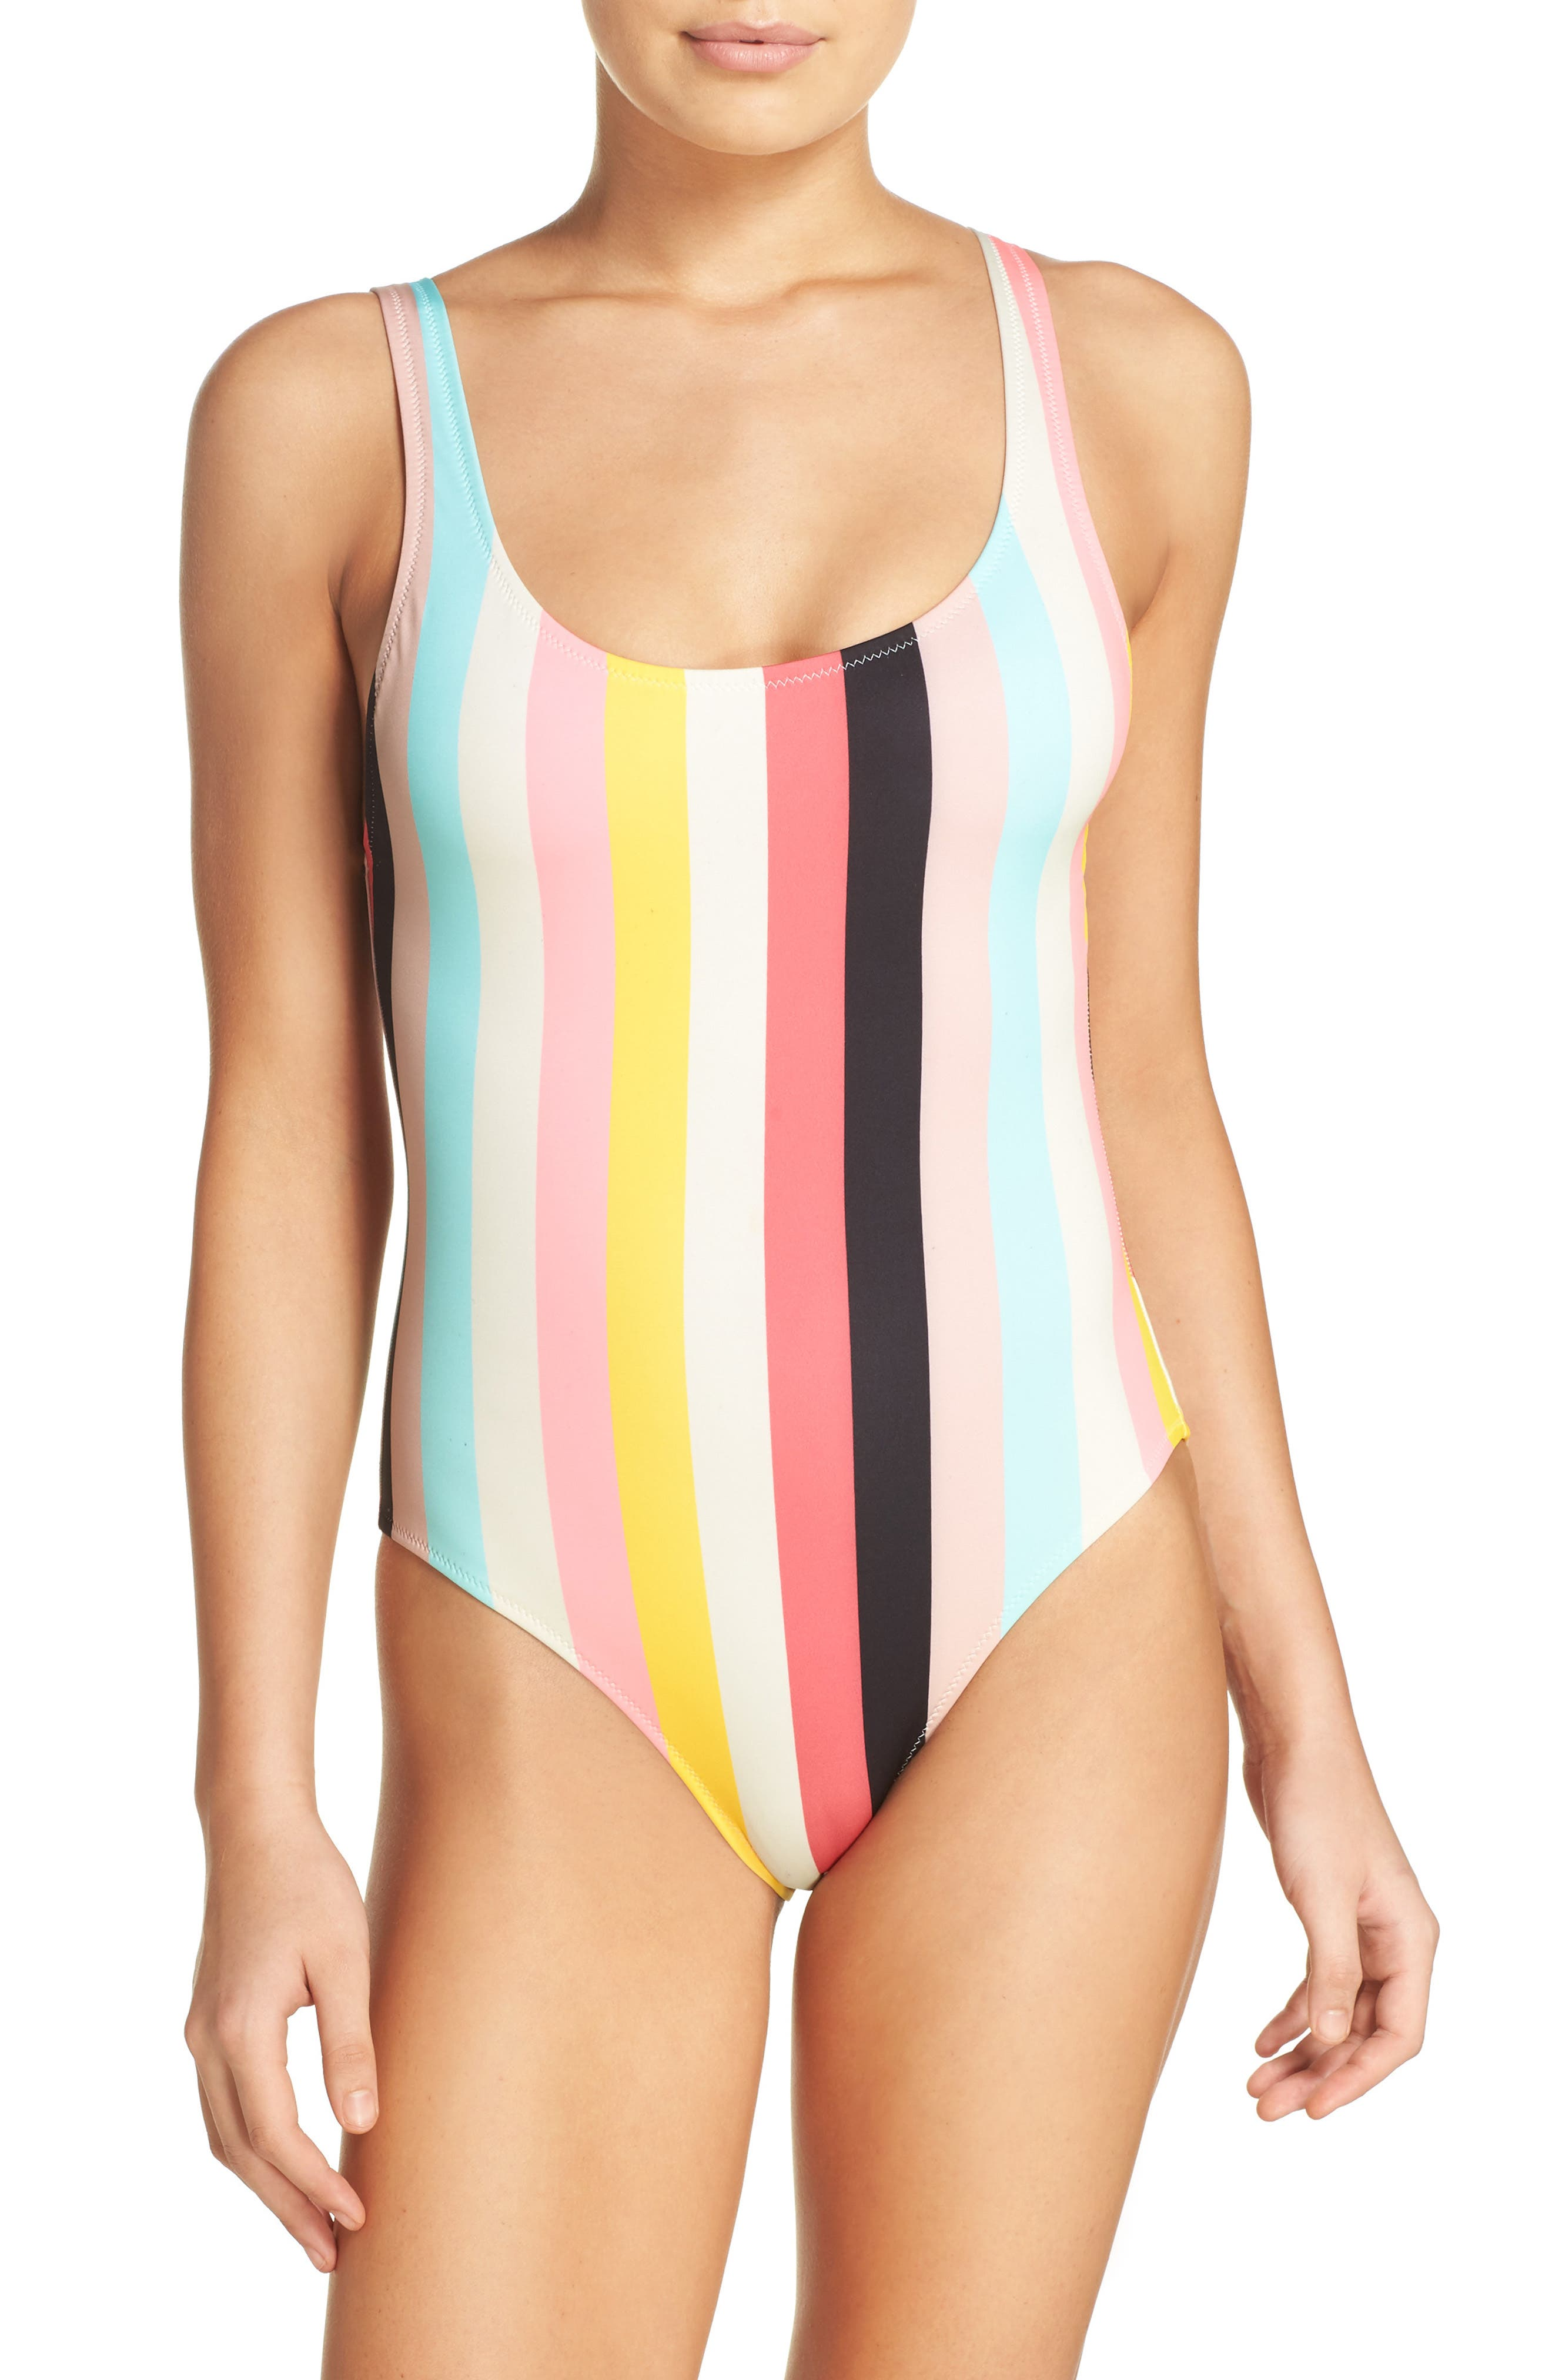 Alternate Image 1 Selected - Solid & Striped Anne Marie One-Piece Swimsuit